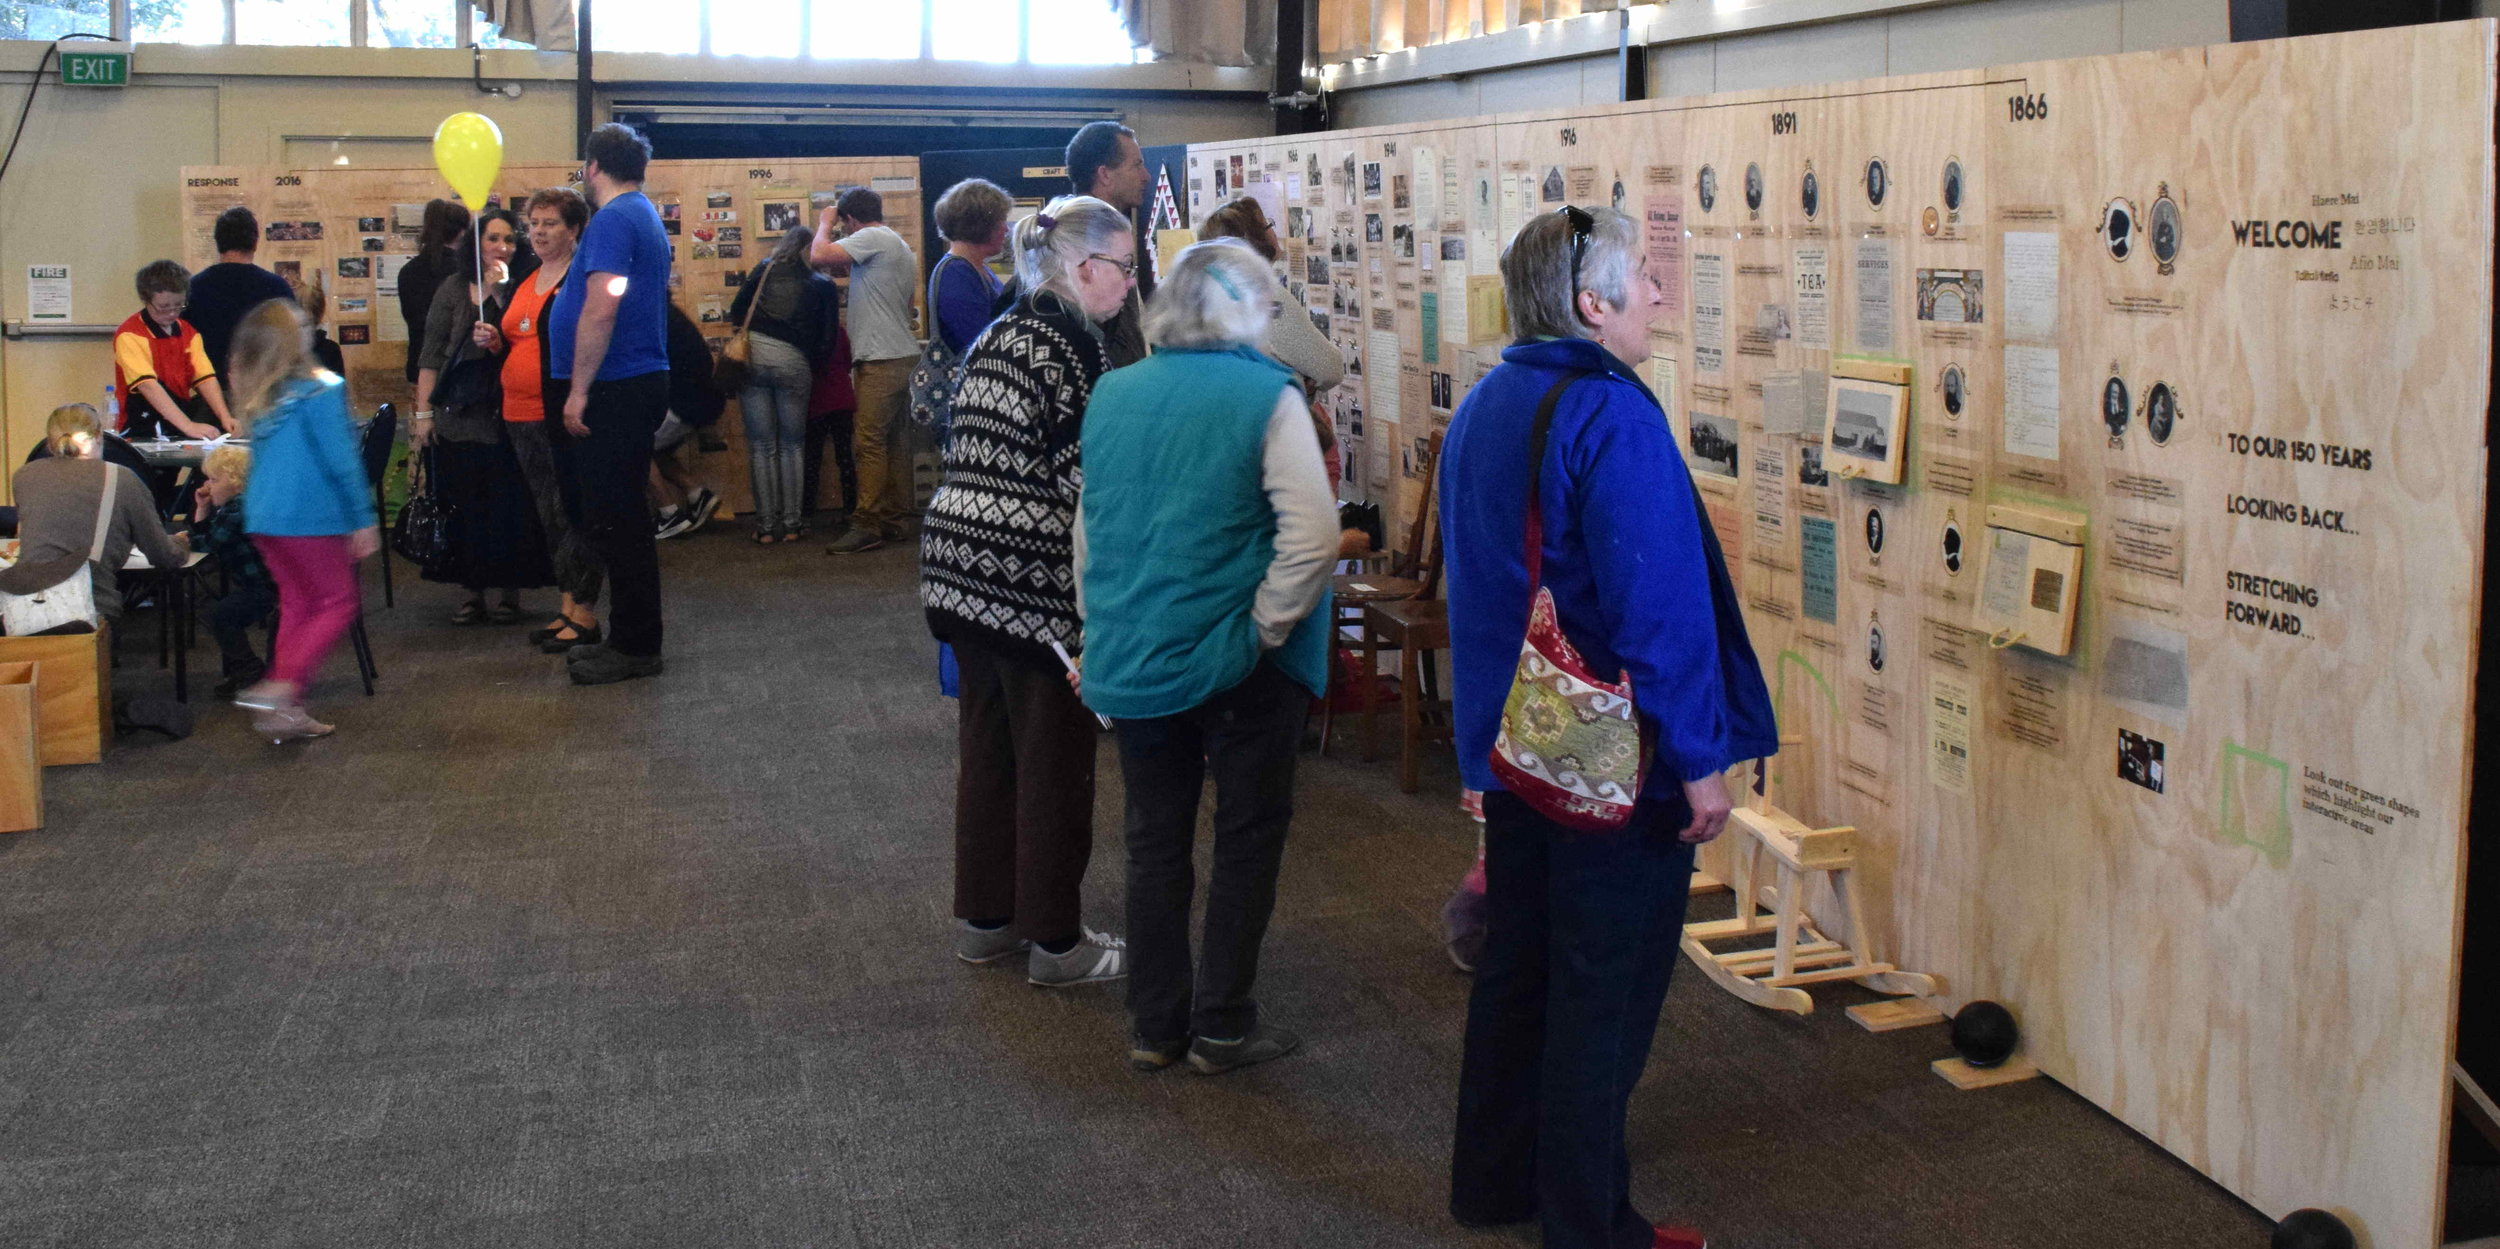 The exhibit detailing history of the Church